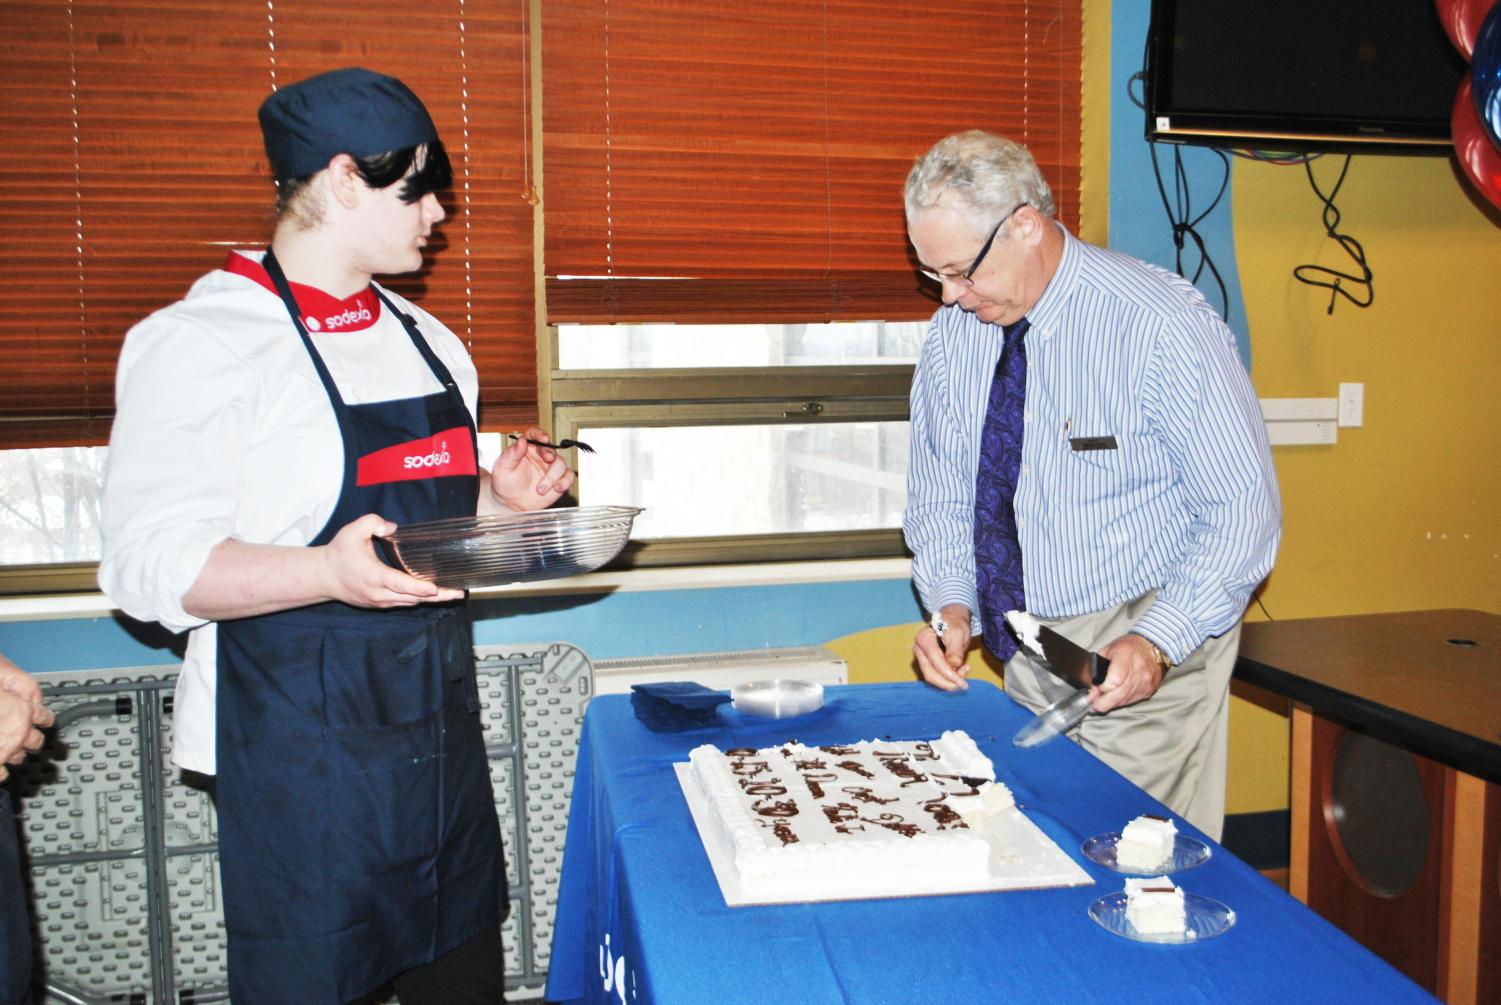 Sodexo General Manager Jim Butler (right) cuts a cake for a Sodexo staff celebration Feb. 11 in the Mt. Cat Club while Sodexo employee Solaris Deffenbaugh (left) waits for a piece.